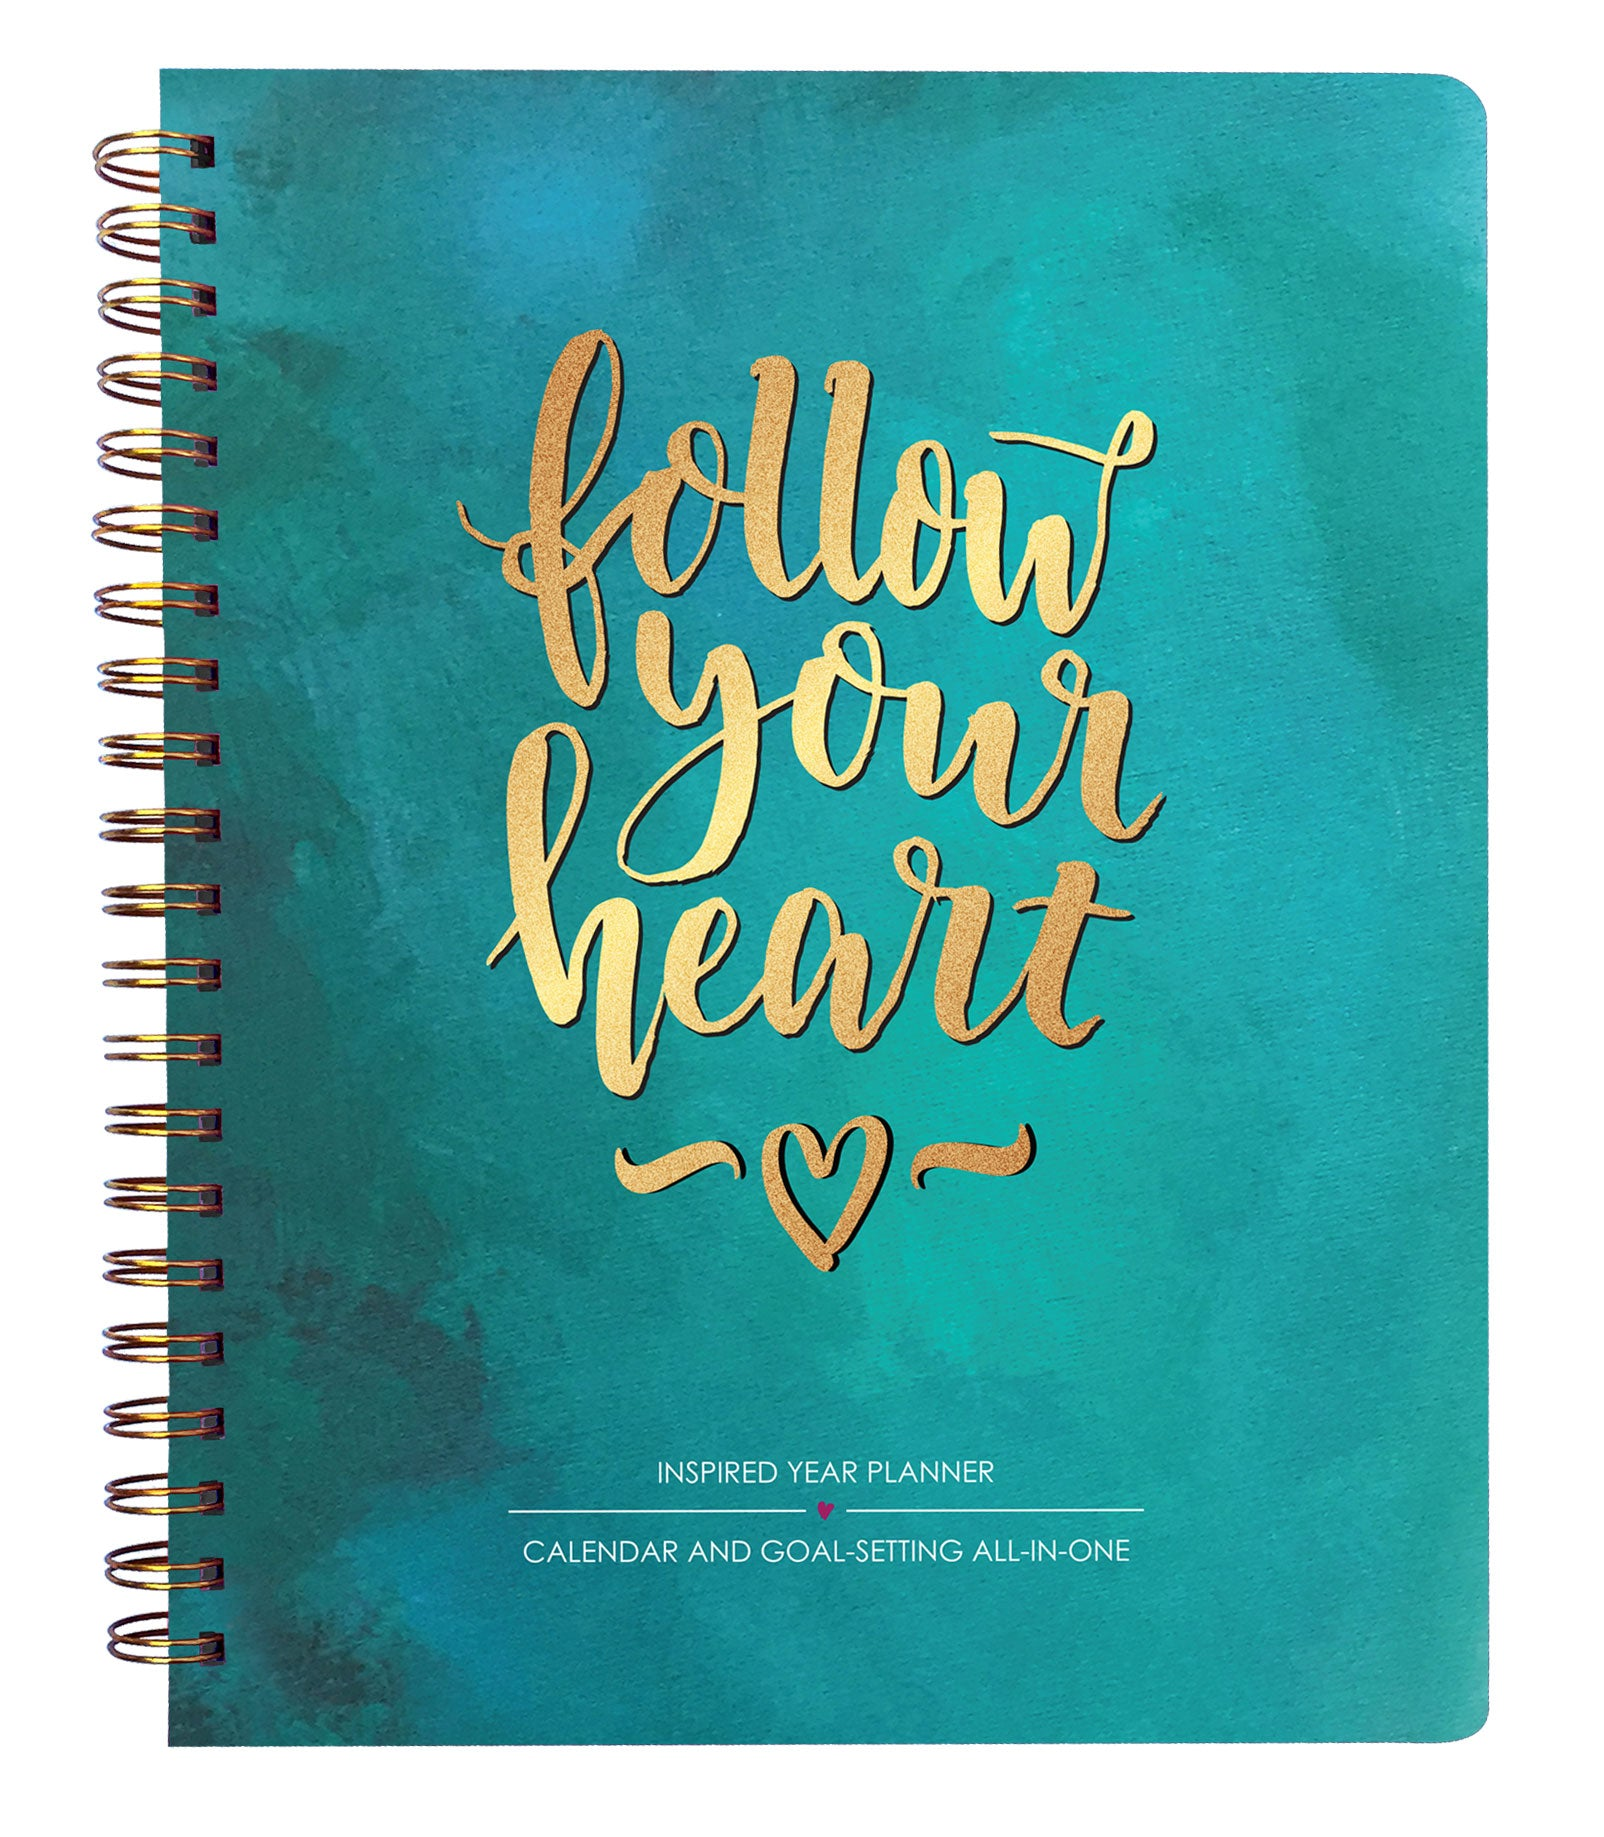 2019 calendar - Inspired Year 2019 Planner - Follow Your